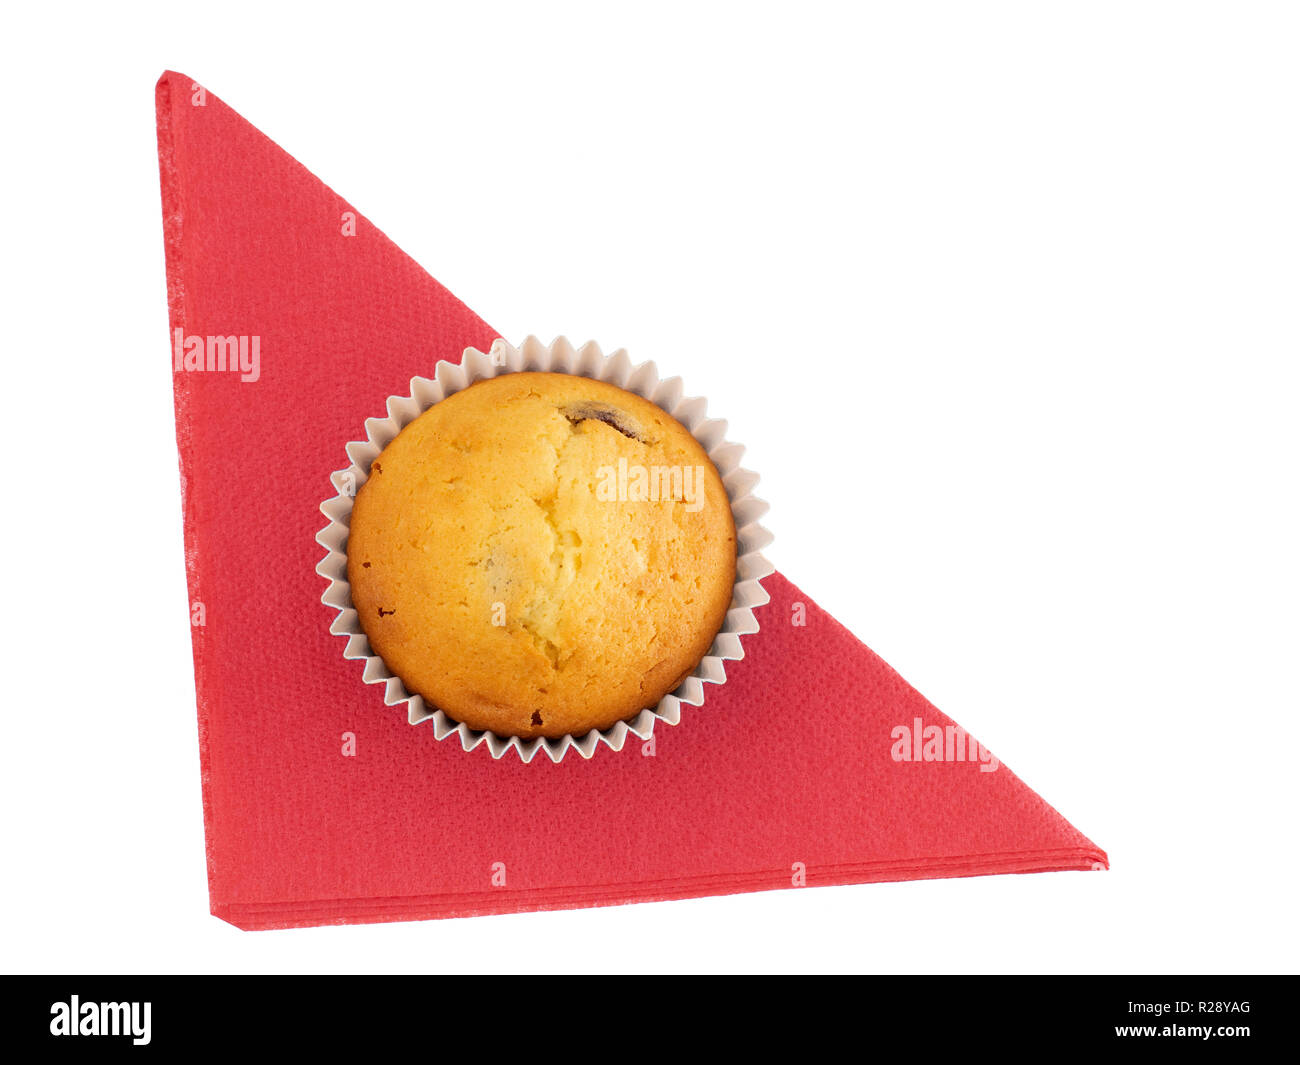 Homemade fruit muffin, cupcake on red paper serviette, napkin isolated on white. Small home baked cake, overhead view. - Stock Image